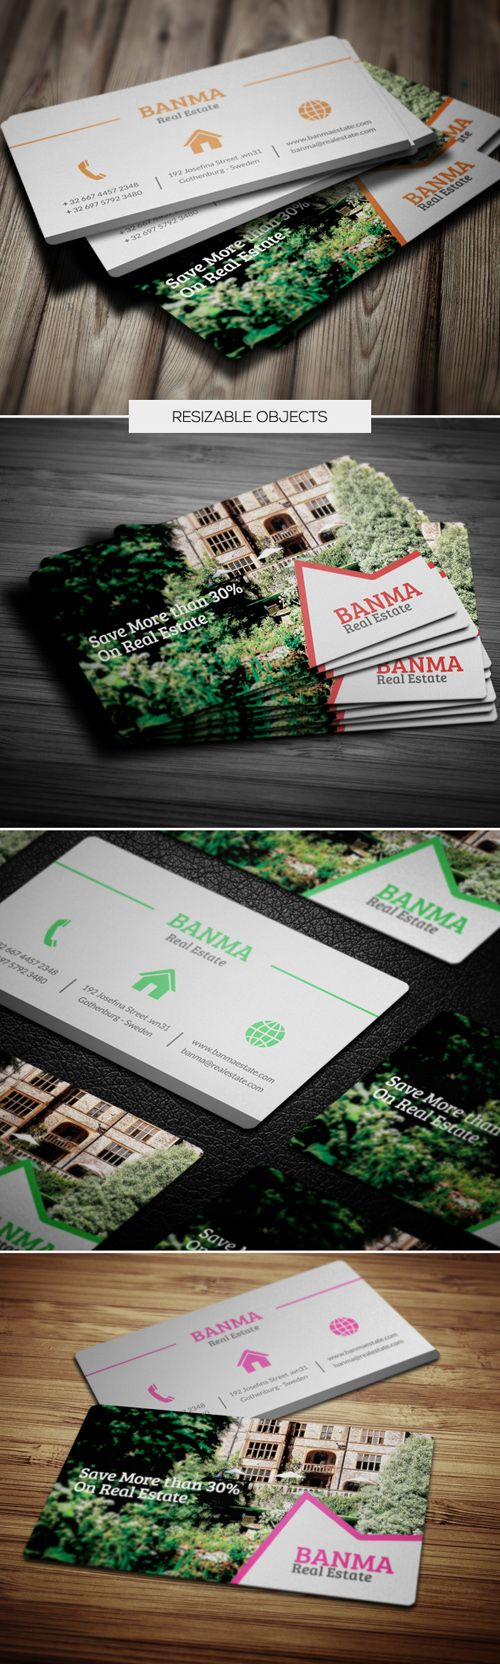 25 Modern and Unique Business Cards Design-3